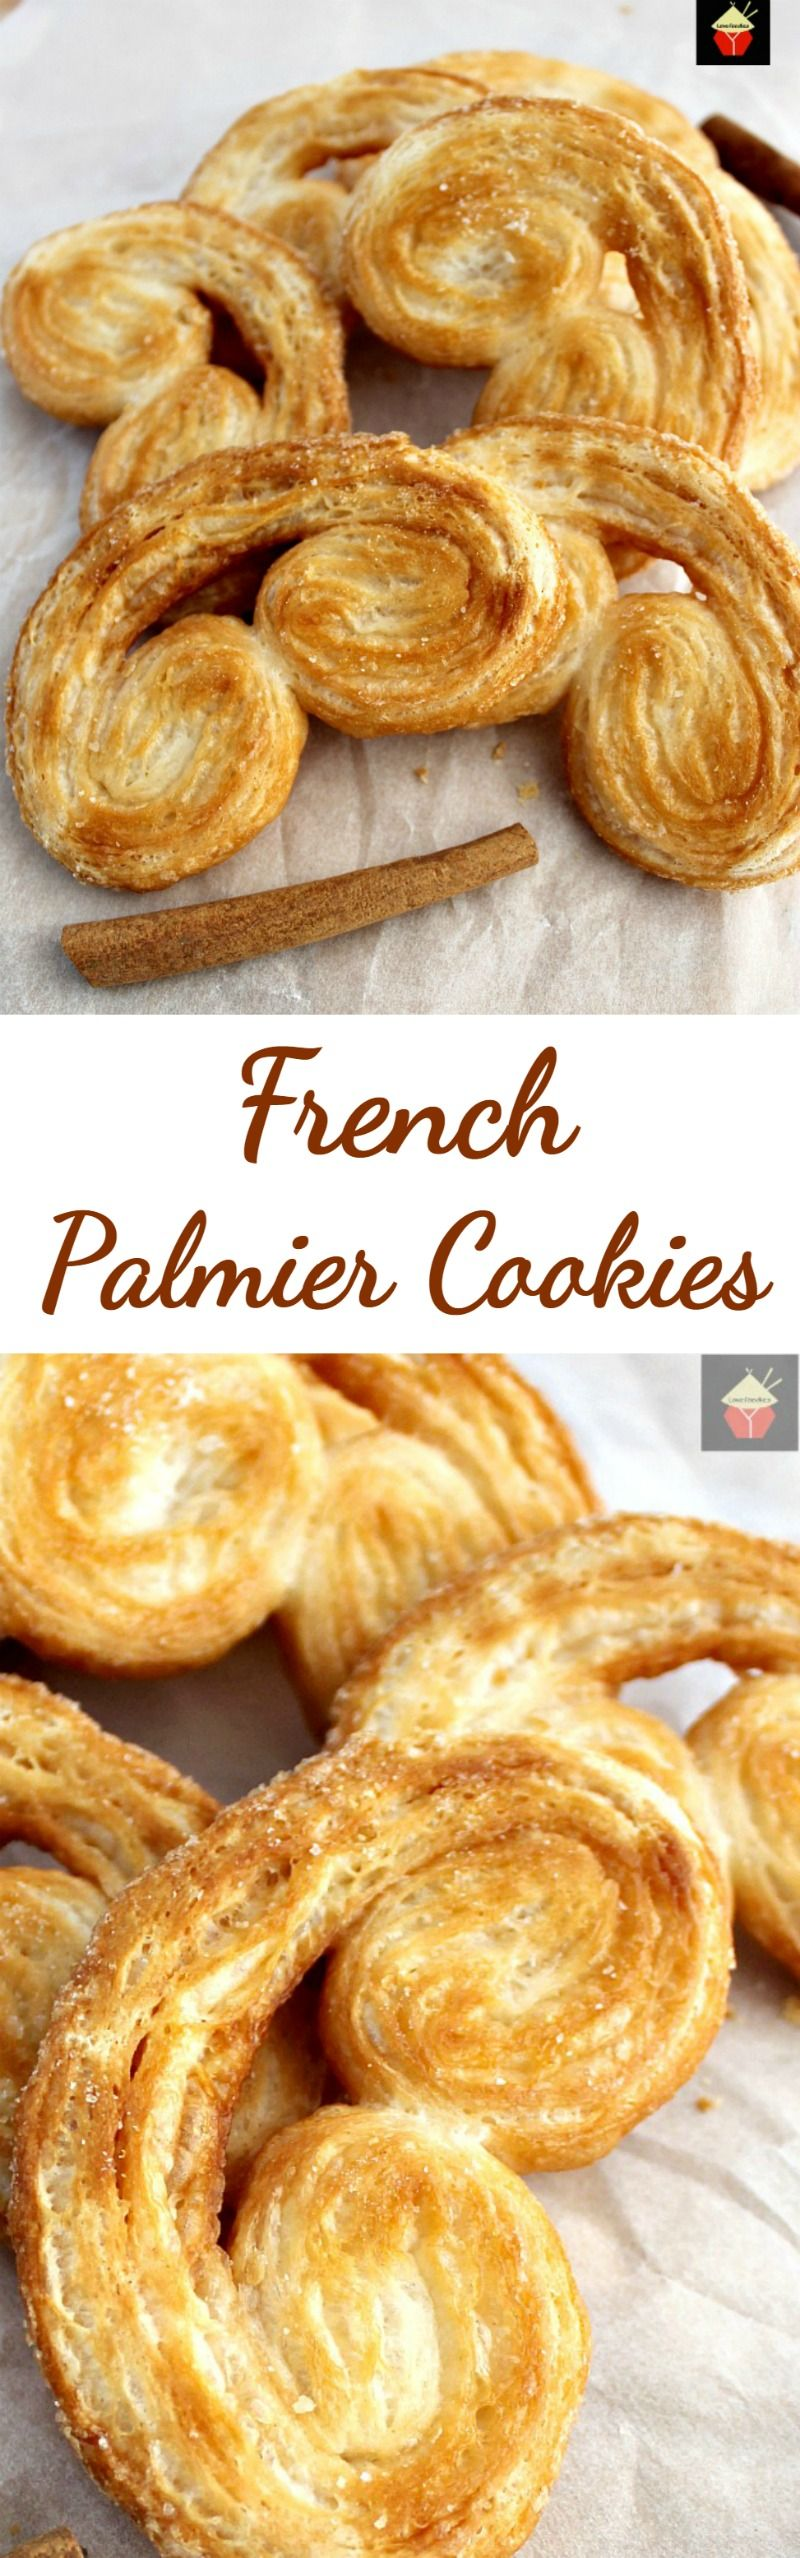 Easy French Palmier Cookies. A.K.A. ELEPHANT EARS! These